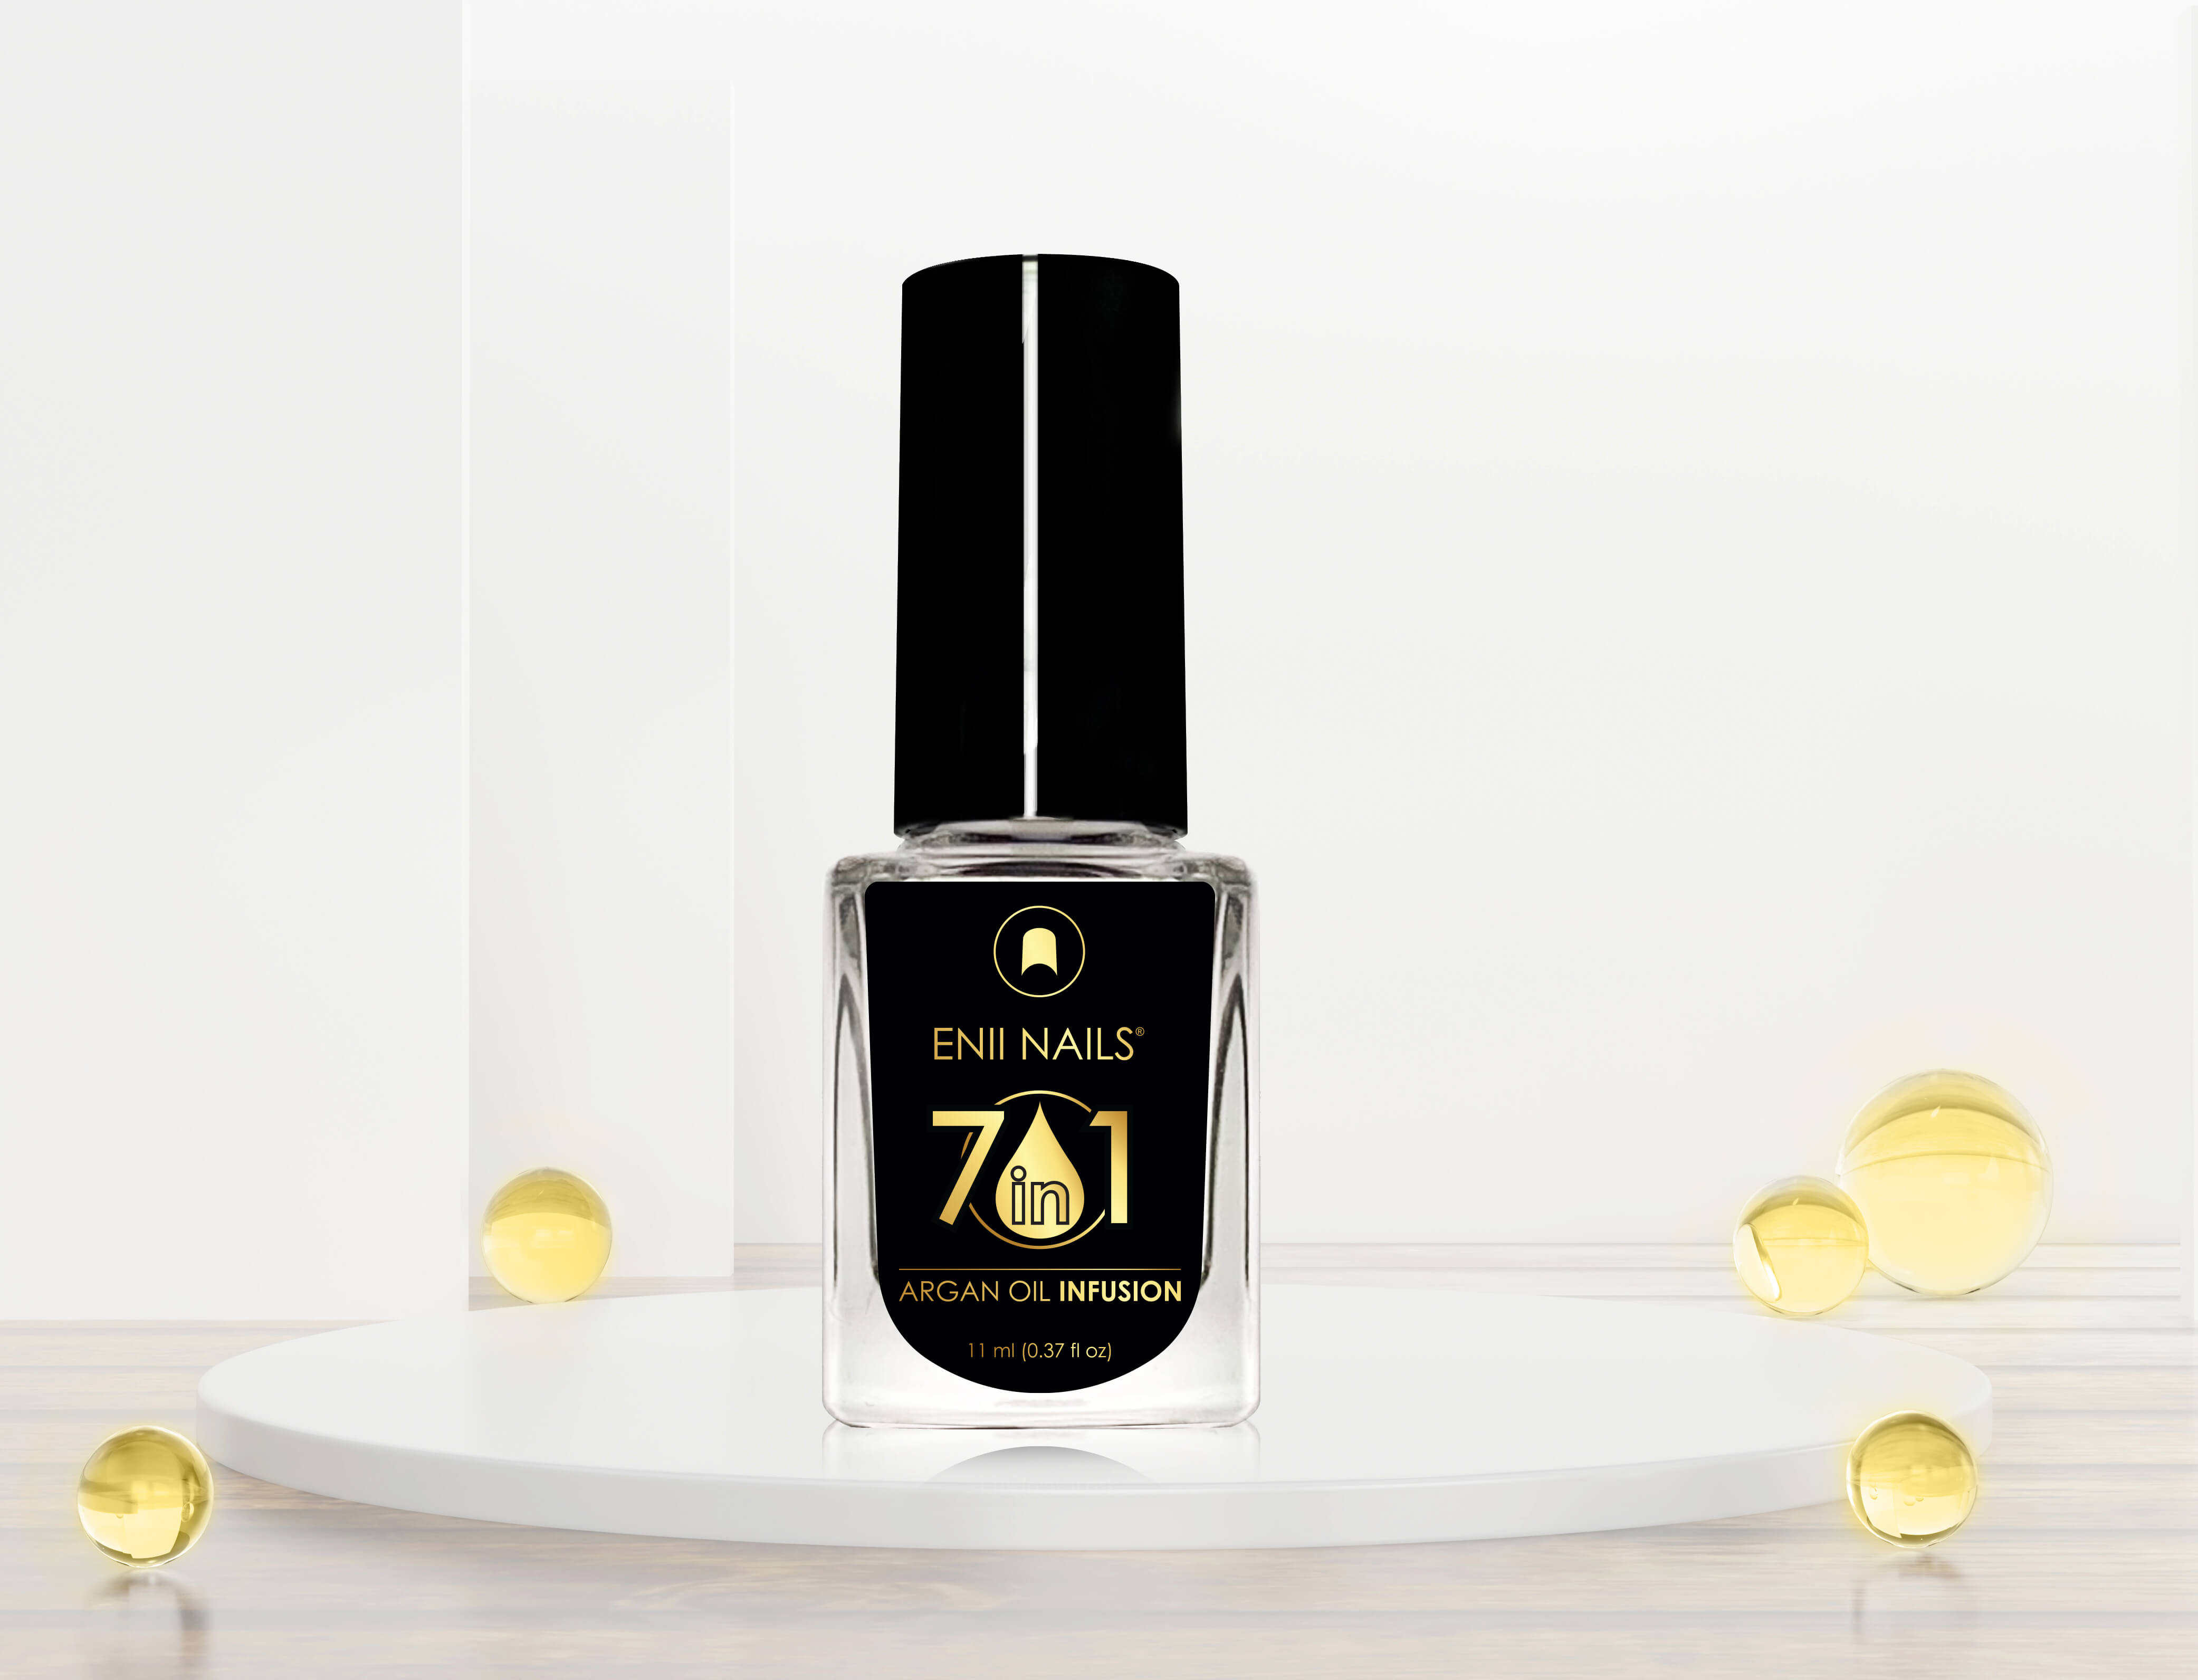 ARGAN OIL INFUSION 7 in 1